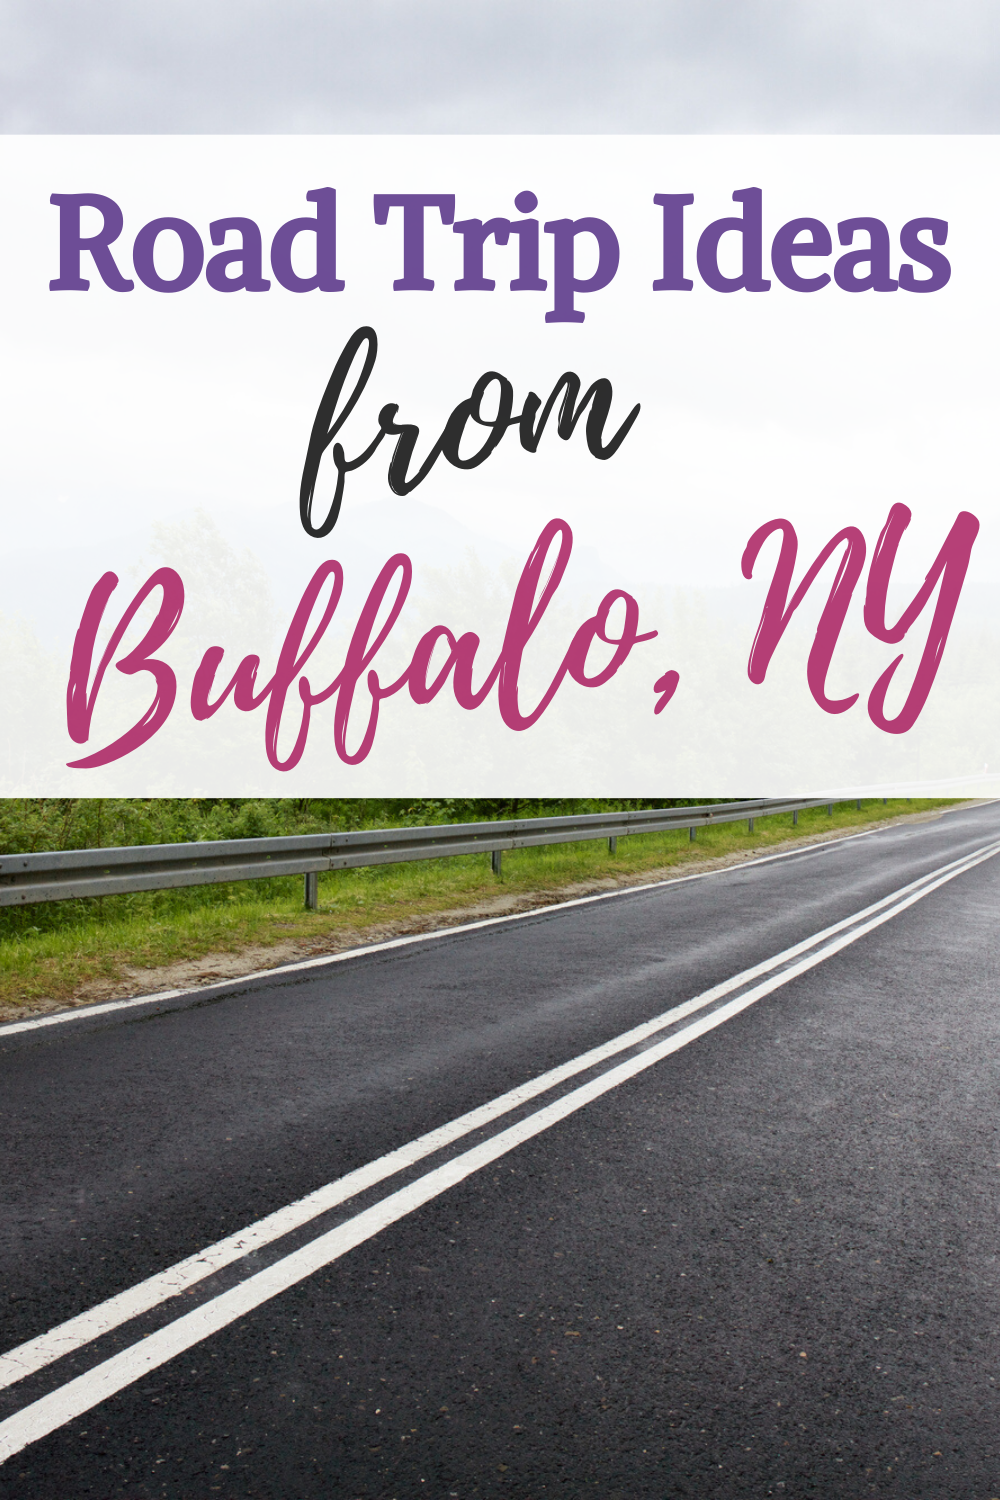 If you live in the Buffalo, New York area and want to go on vacation close to home, there are several fun road trip ideas!  Whether you wish to hit Hersheypark in Pennsylvania or the Strong Museum in Rochester, you're going to love these fun road trips. #travel #roadtrip #buffalo #newyork #trips #roadtrips #travelwithkids #travelingwithkids #roadtripideas #roadtripswithkids #buffalony #buffalotravel #wny #westernnewyork